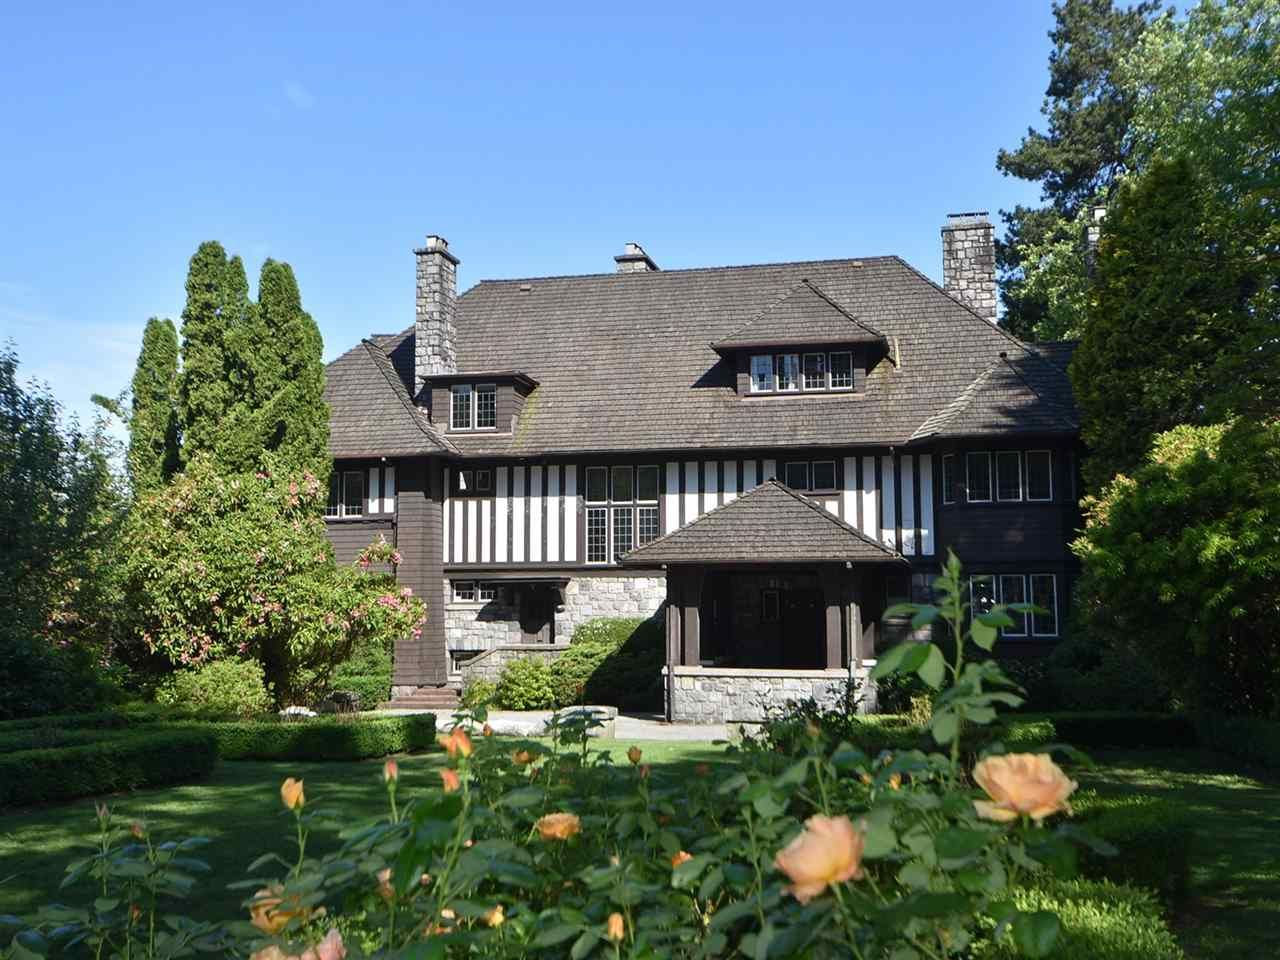 """Main Photo: 3333 THE Crescent in Vancouver: Shaughnessy House for sale in """"FIRST SHAUGHNESSY - THE CRESCENT"""" (Vancouver West)  : MLS®# R2174654"""